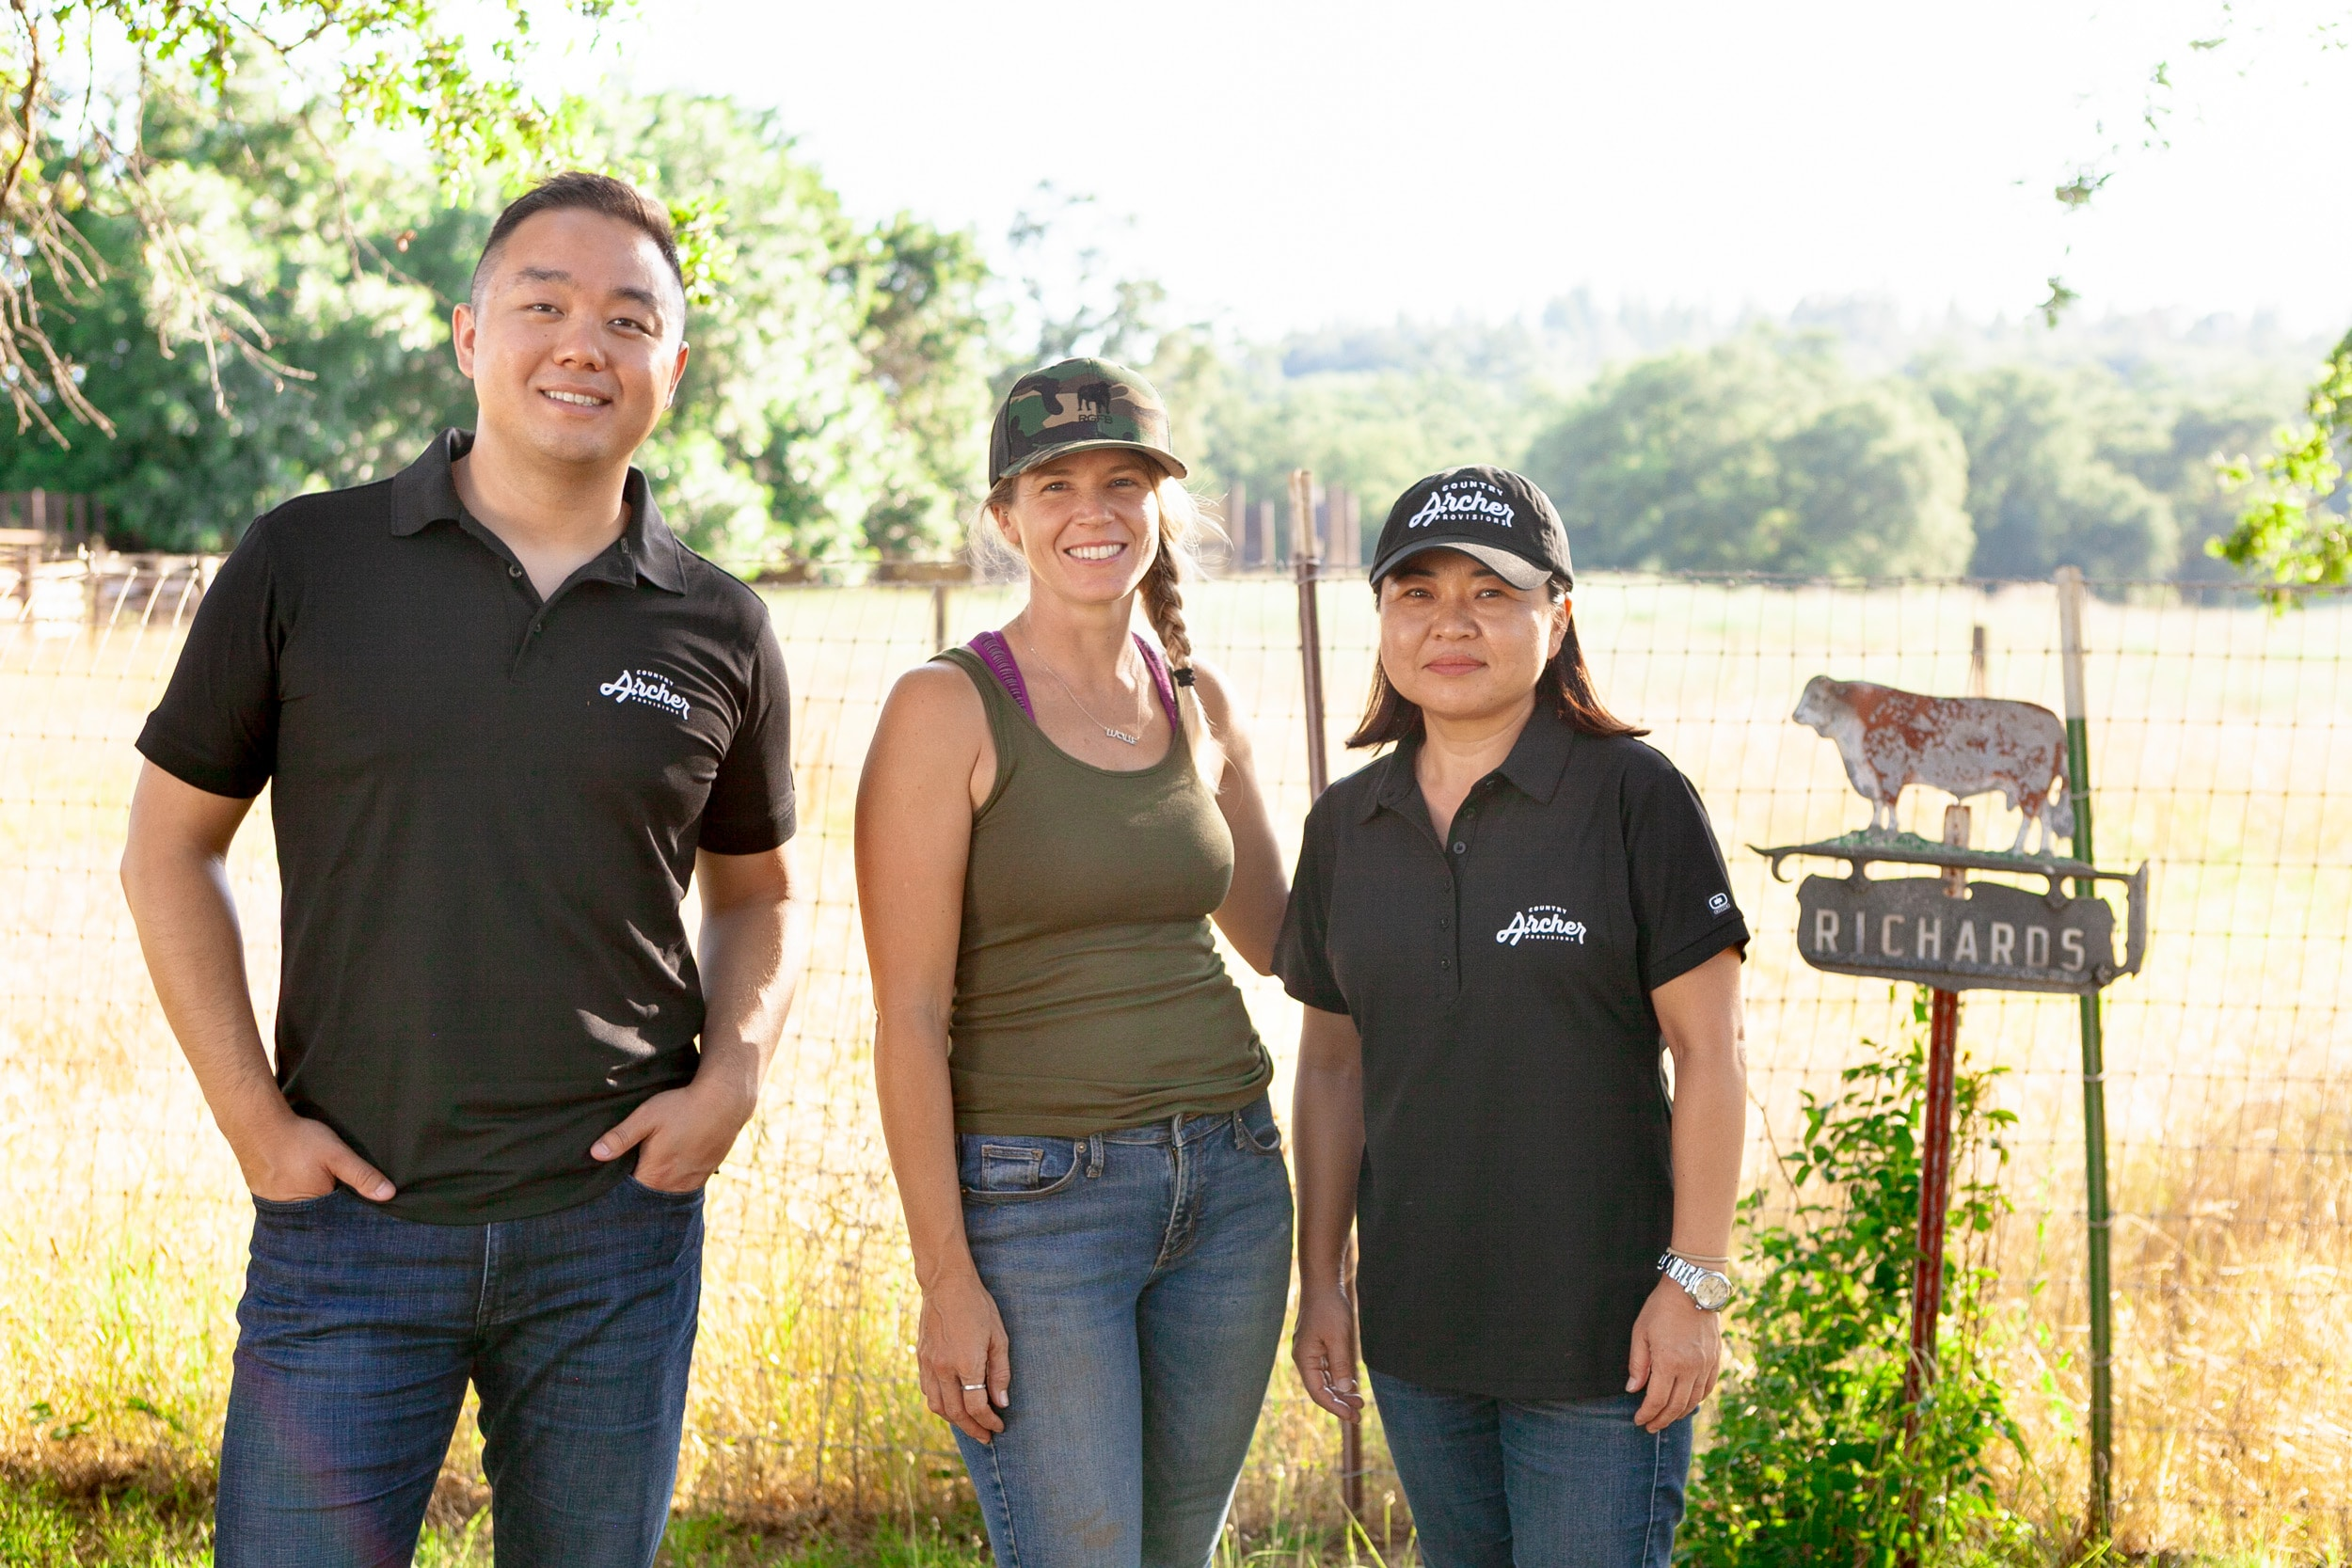 Country Archer Provisions Partners with Richards Grassfed Beef to Advance Impact of Regenerative Agriculture